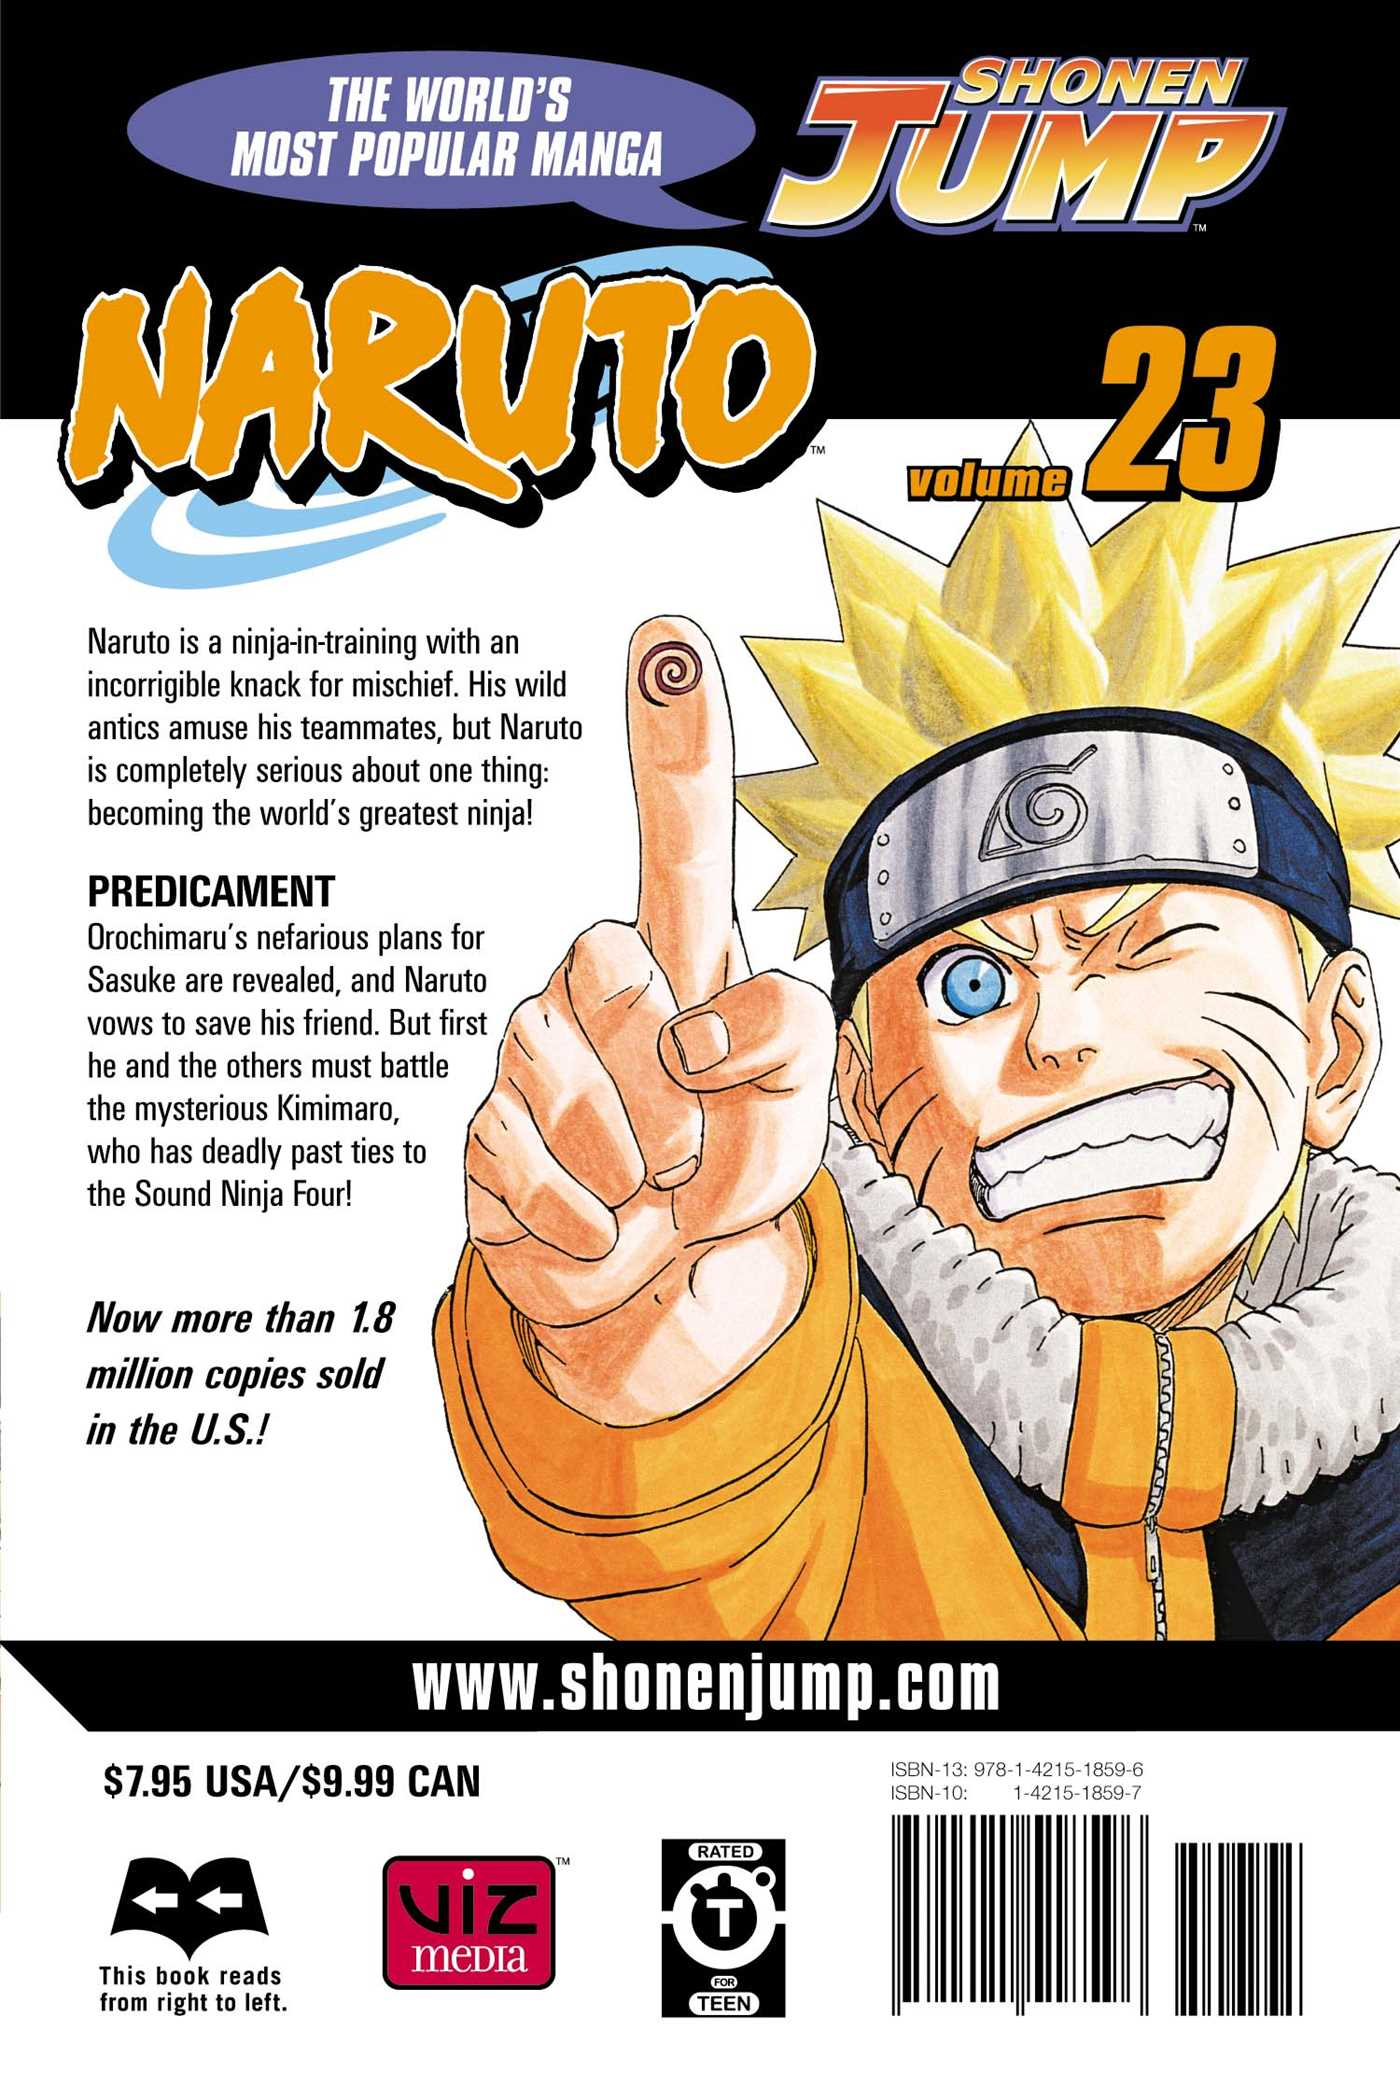 Naruto vol 23 9781421518596 hr back